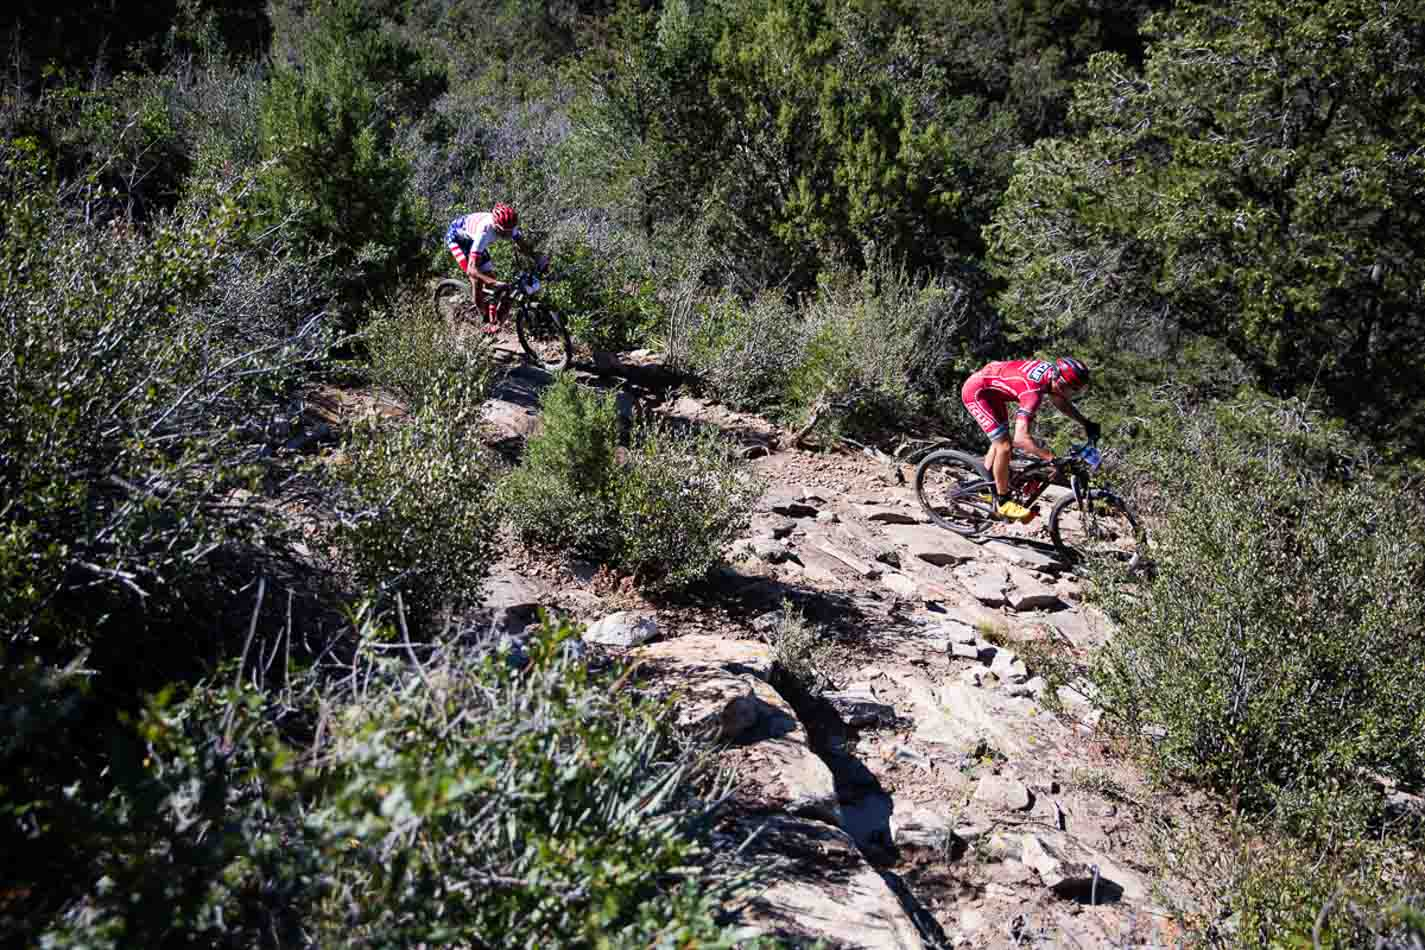 Todd and Troy Wells crushing it on the descent of the Anasazi Trail.